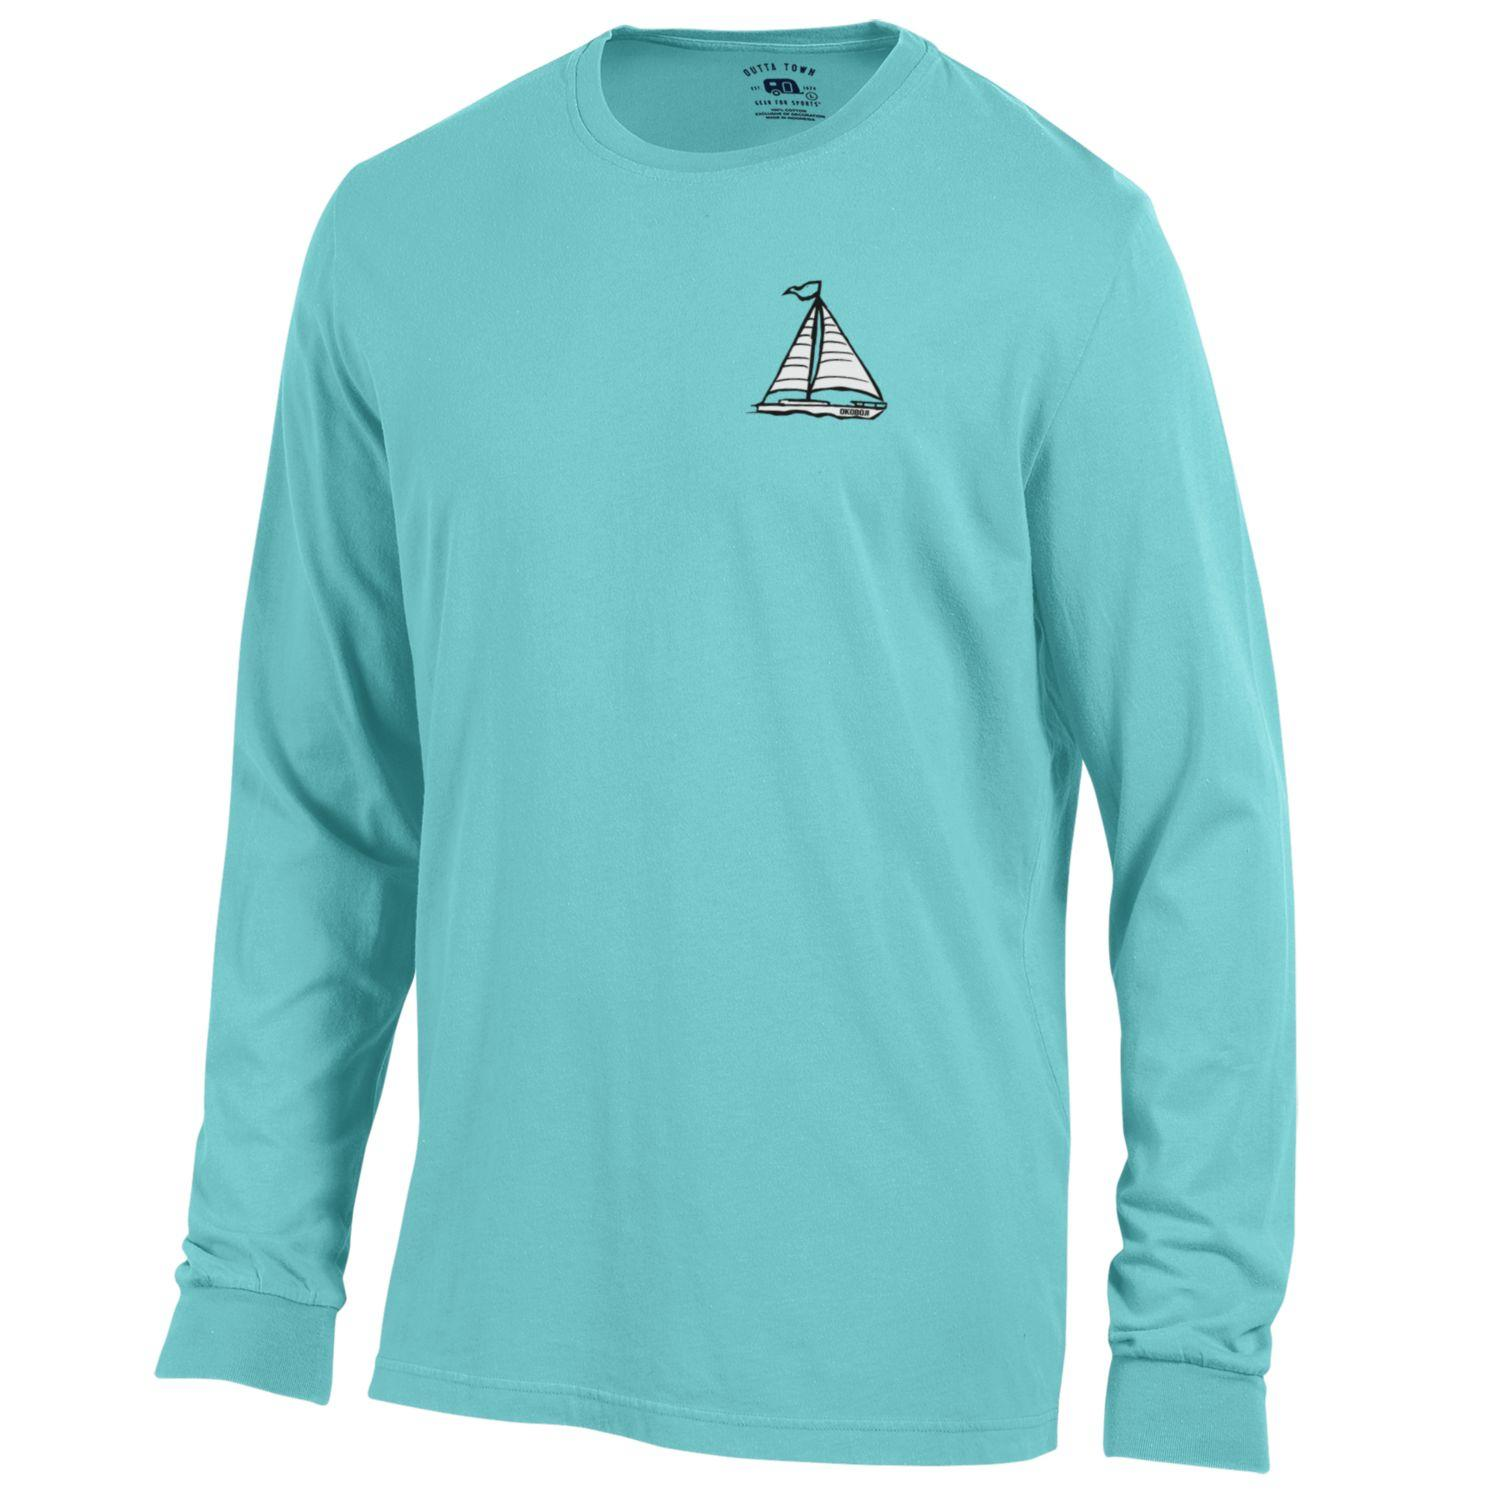 Outta Town Long Sleeve Sailboat Tee - Liquid Blue